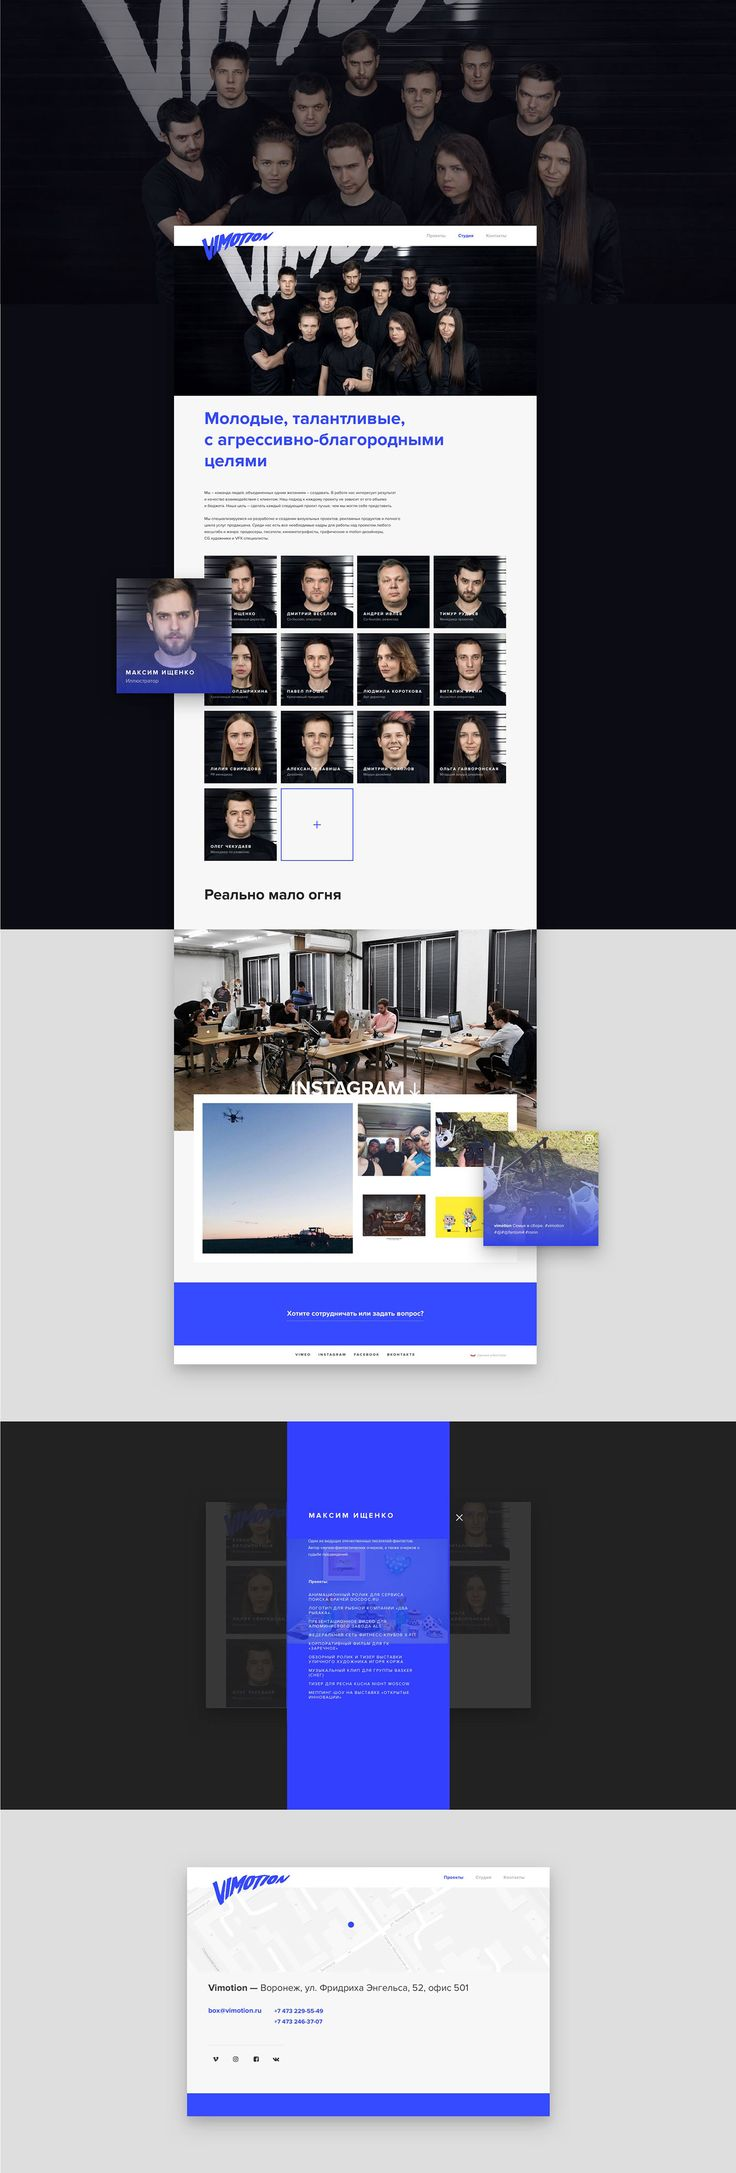 Vimotion is a creative studio of visual products. Video production, advertising, photography and content creation is what the agency does.Minimalistic design to not deflect attention away from the projects as they play the main role on the website.